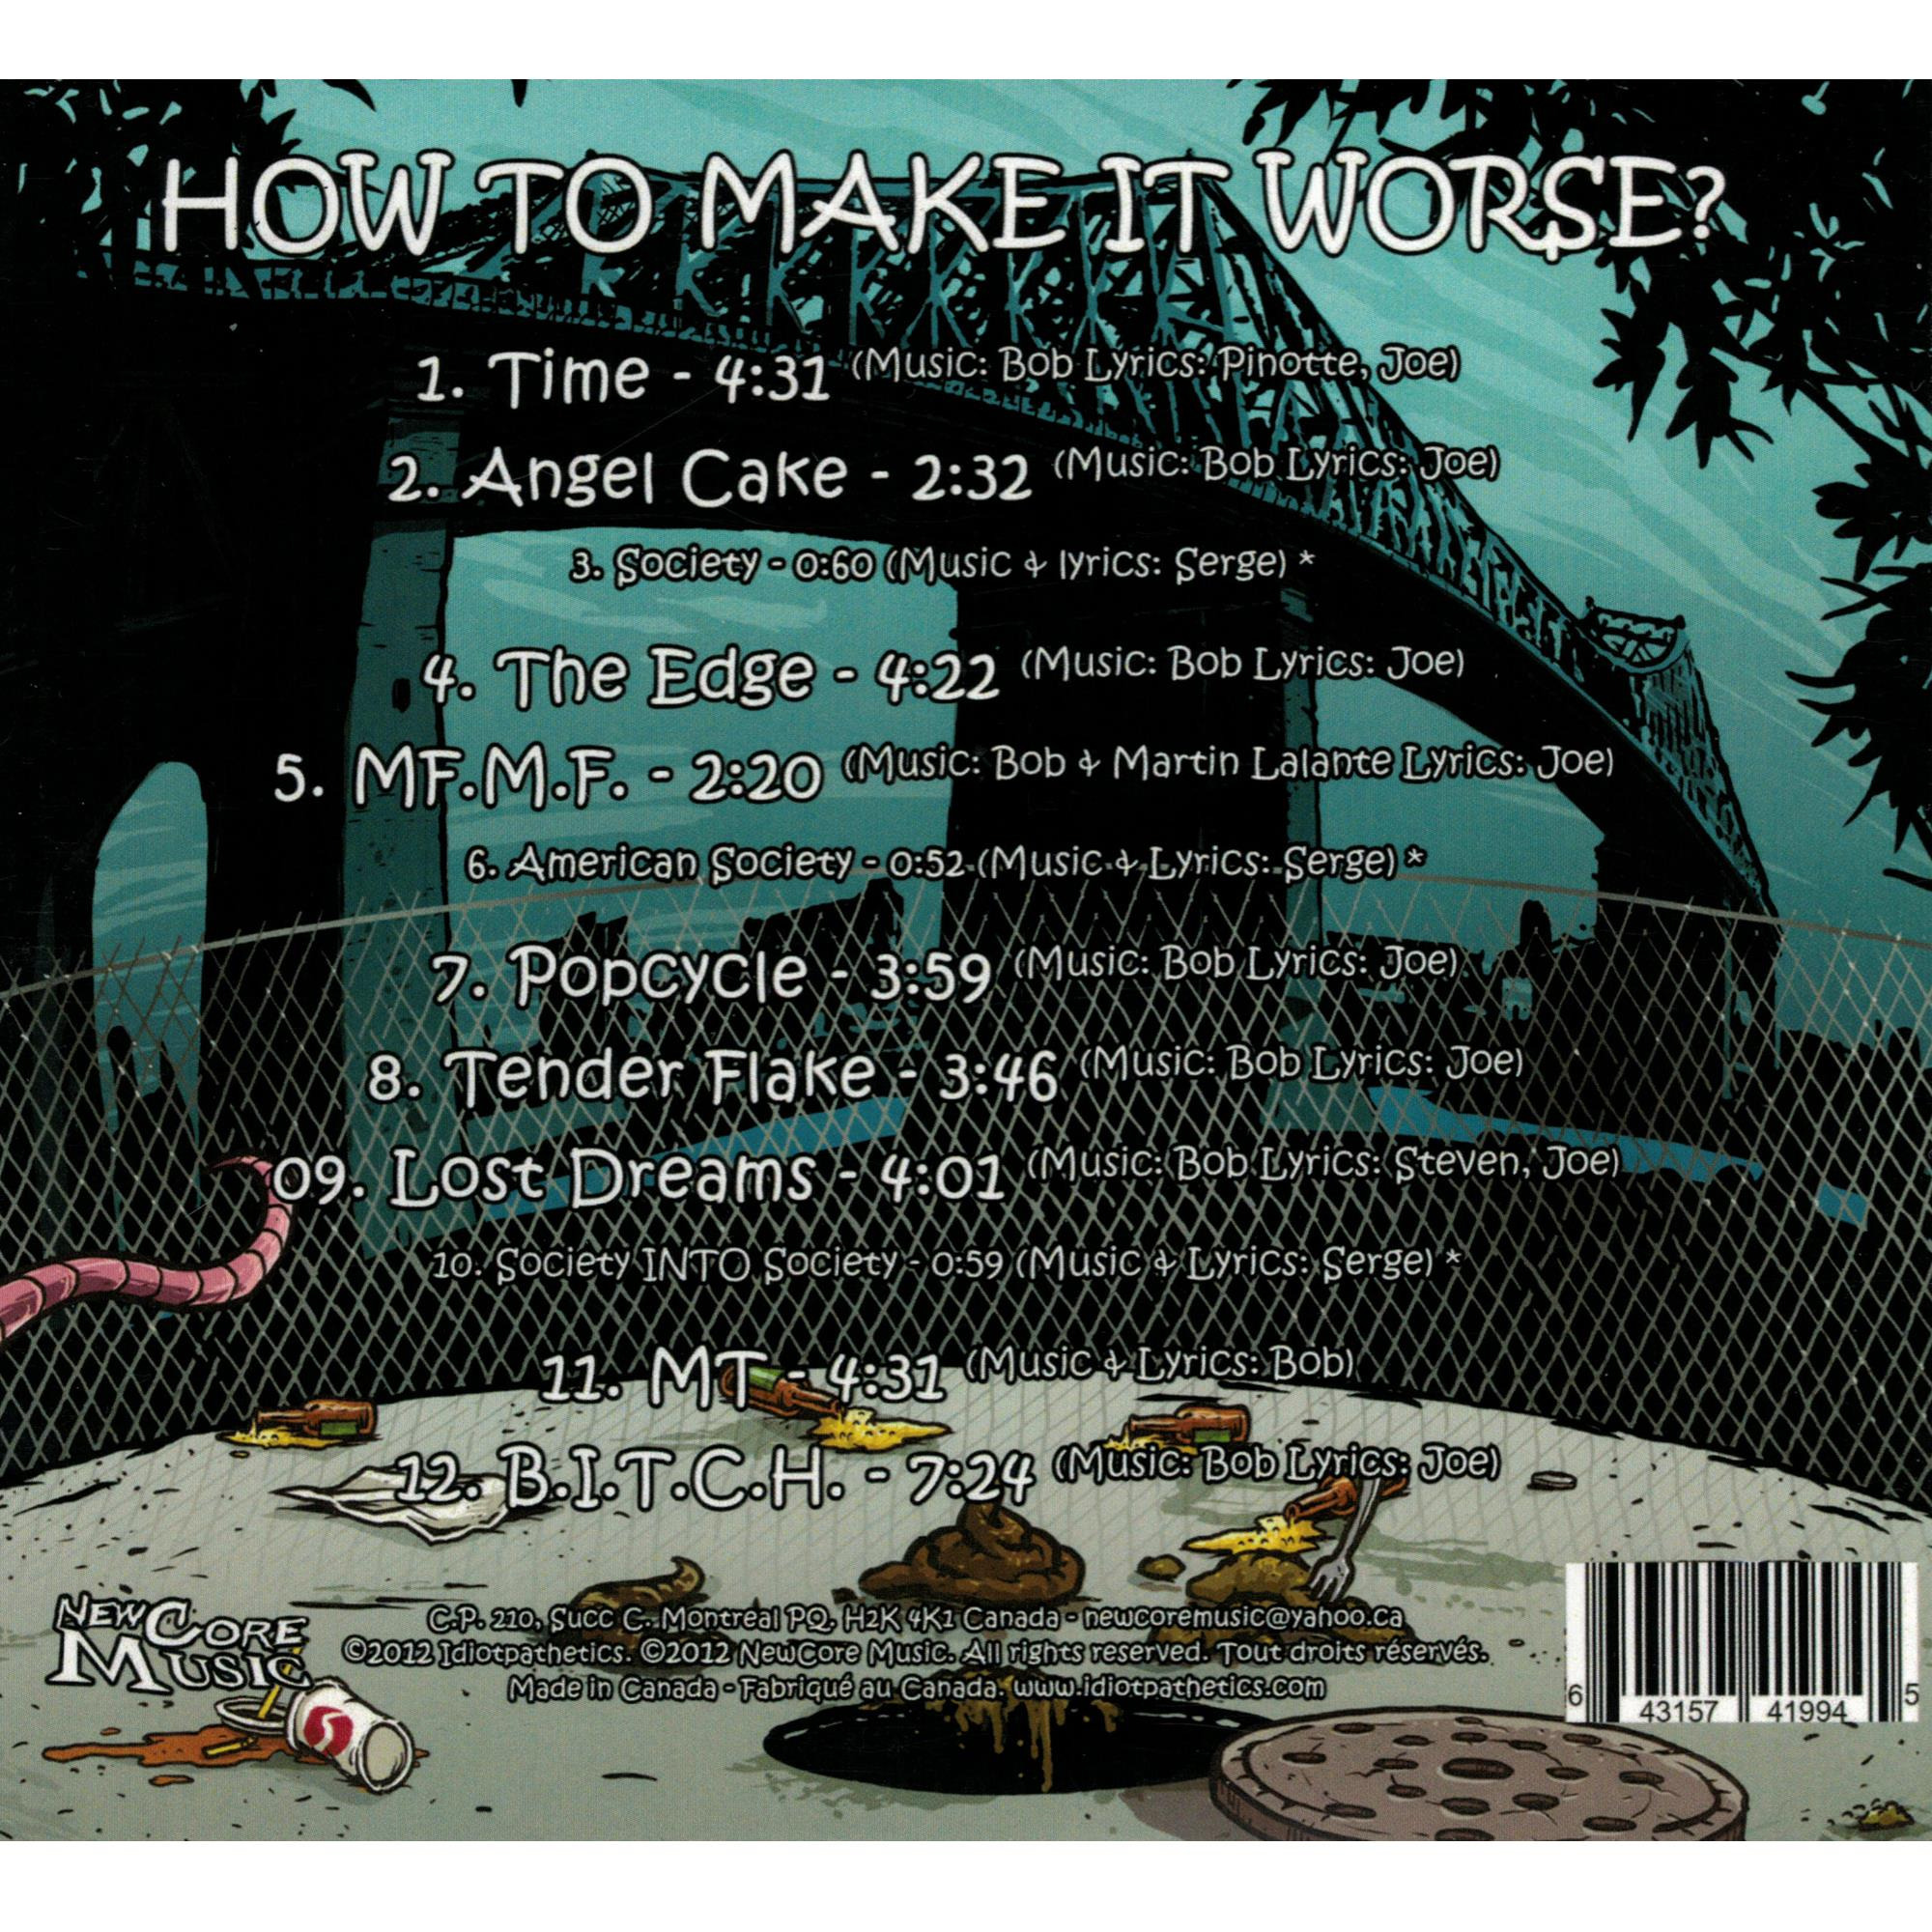 How To Make It Worse CD